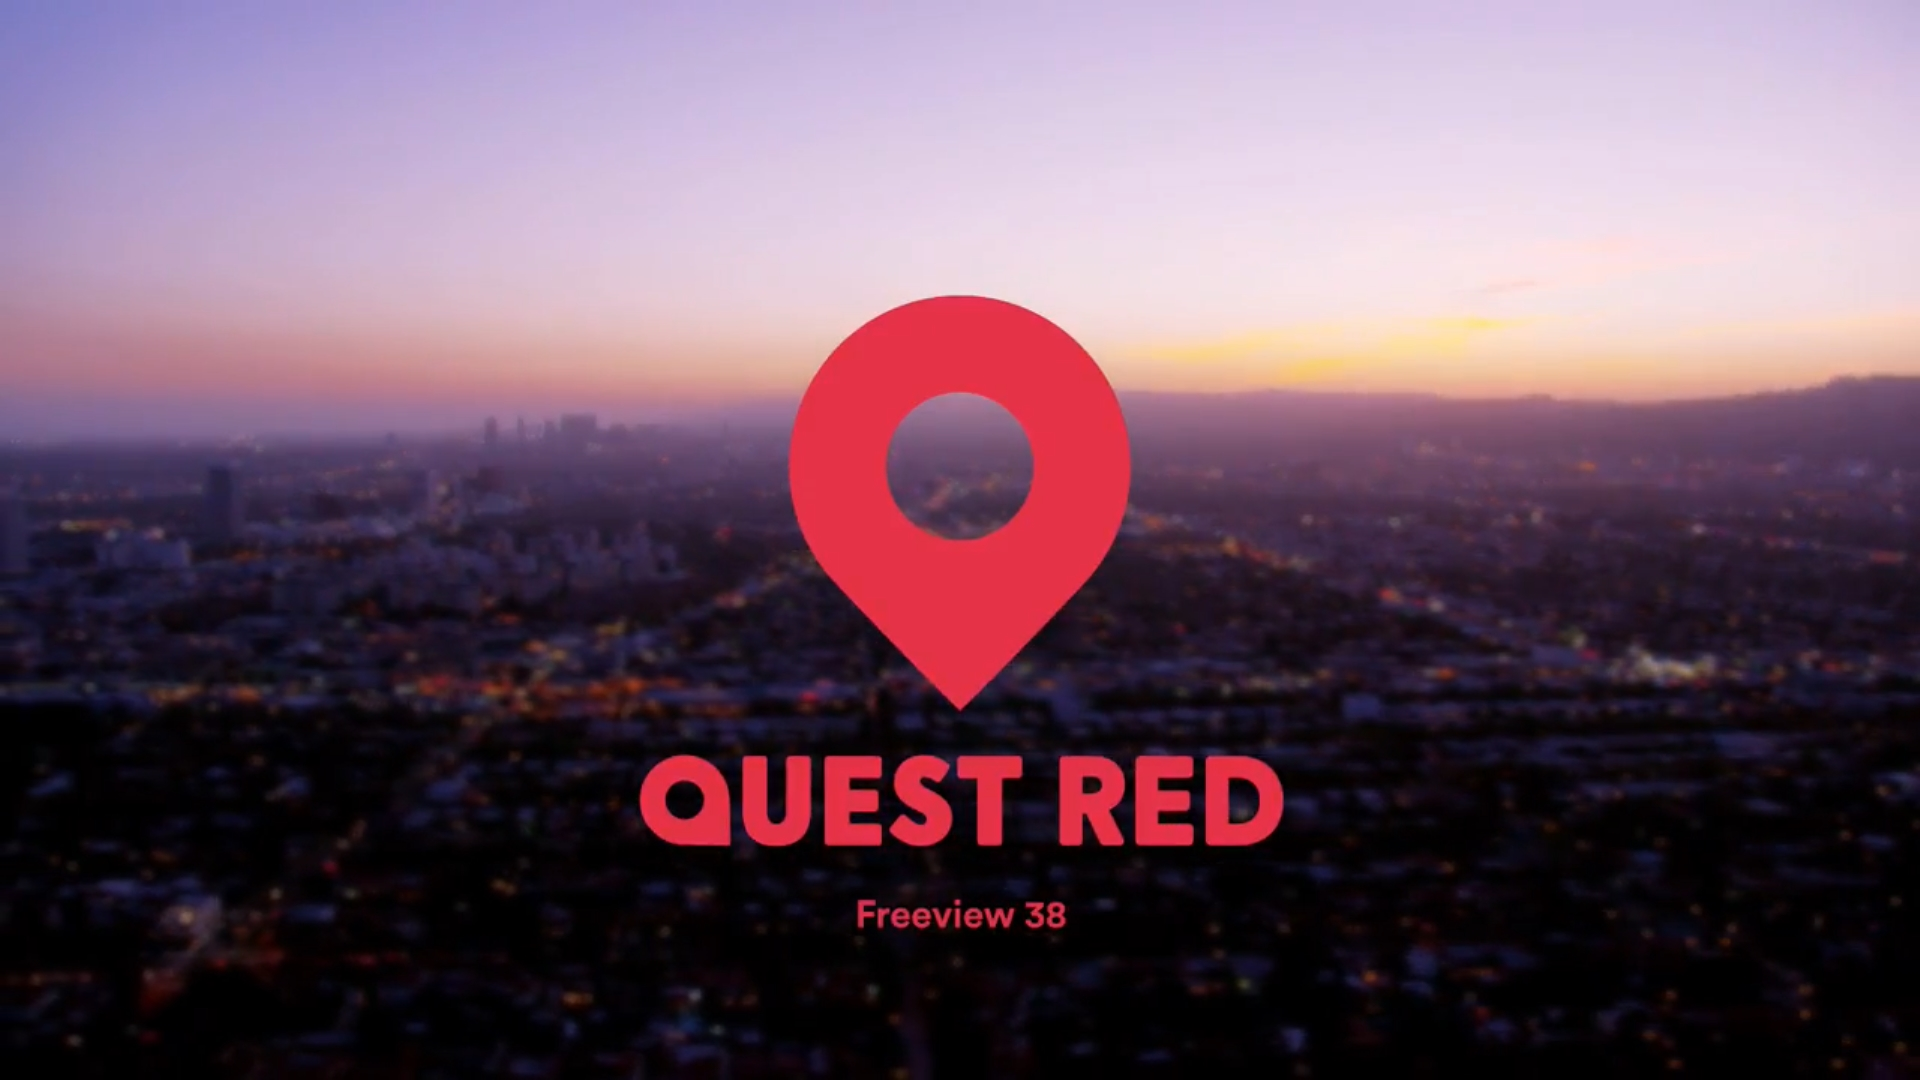 Changes to Quest Red+1 on Freeview